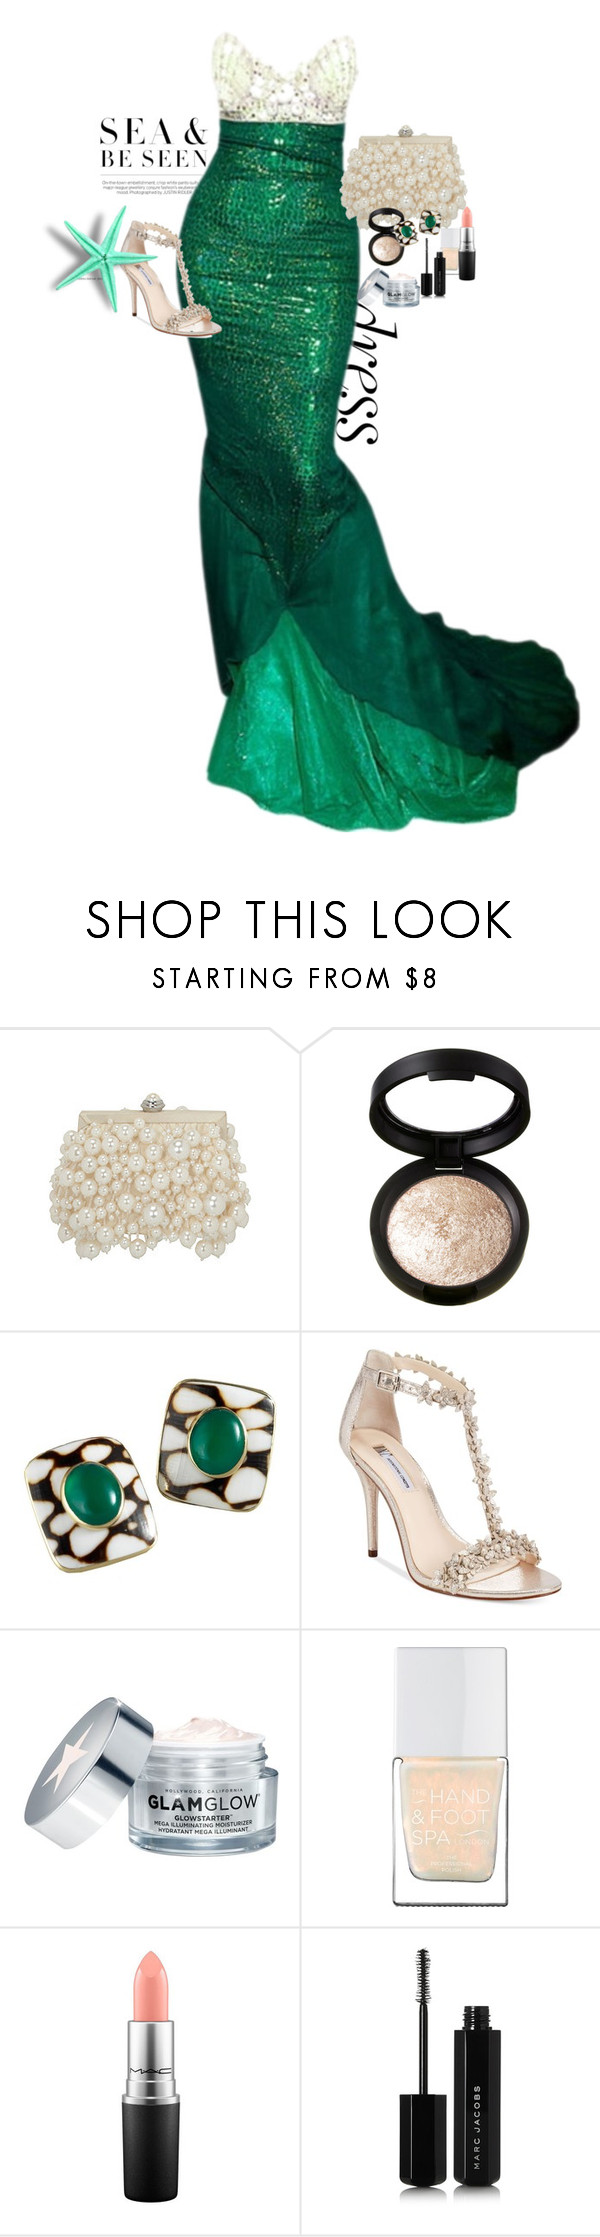 """""""by the sea party's dress"""" by claire86-c on Polyvore featuring moda, Laura Geller, Buccellati, INC International Concepts, GlamGlow, The Hand & Foot Spa, MAC Cosmetics e Marc Jacobs"""